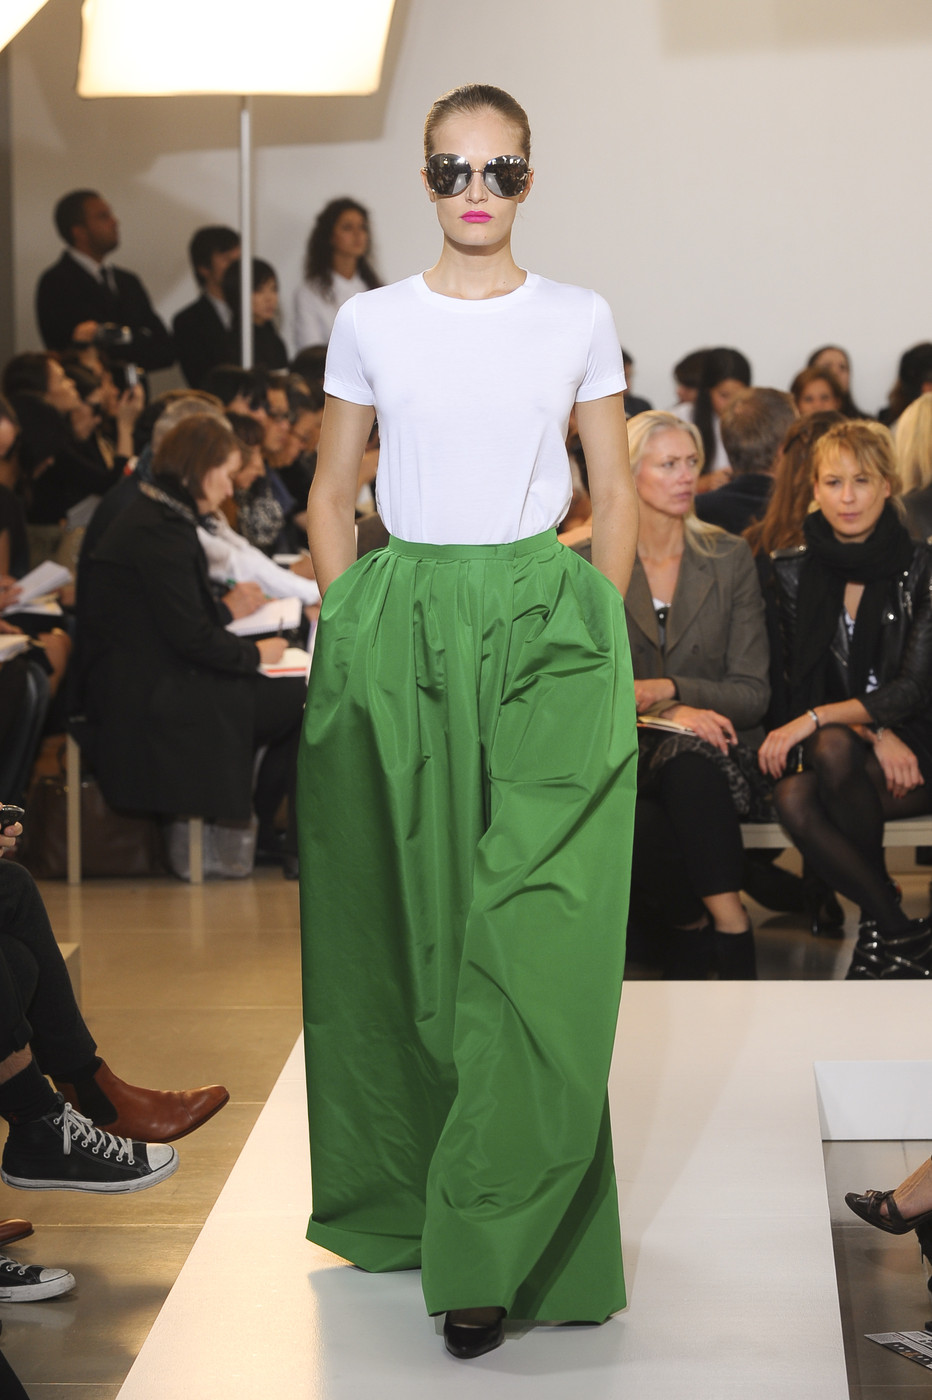 via fashioned by love | Jil Sander Spring/Summer 2011 | green